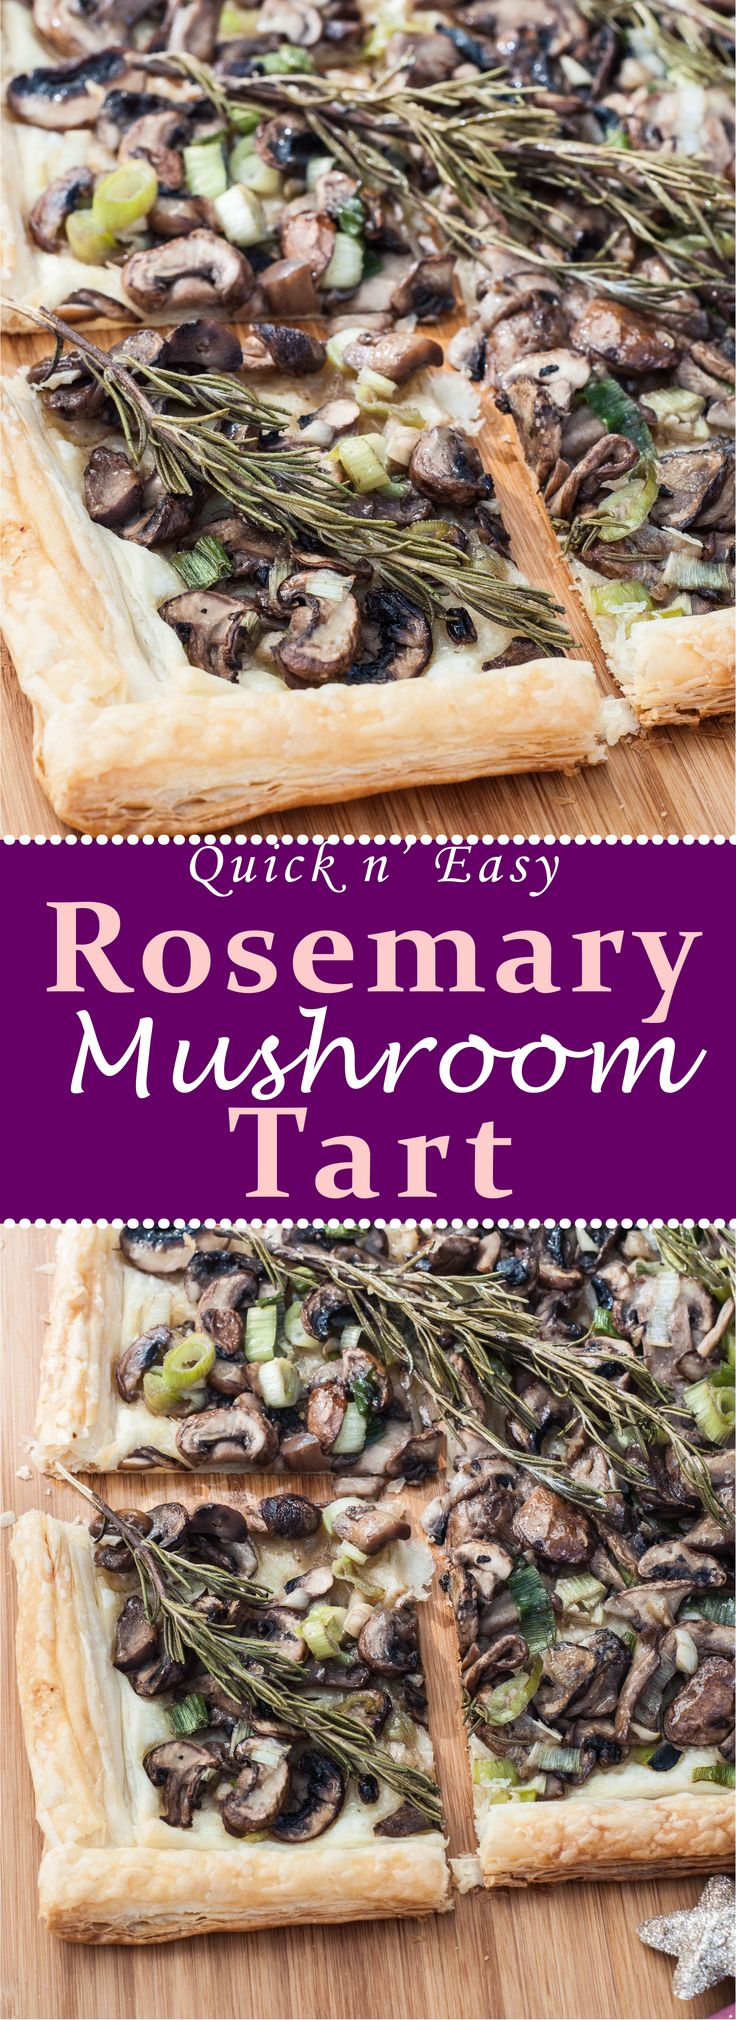 Quick, Easy and Healthy Rosemary Mushroom Tart Recipe! This Vegan Mushroom Tart is so flavorful and simple to make. Eat it as a side, entree, or cut it into small slices for the perfect appetizer! Very healthy, vegan, and gluten-free if gf puff pastry is used. | VeganFamilyRecipes.com |  #vegetarian #winter #food